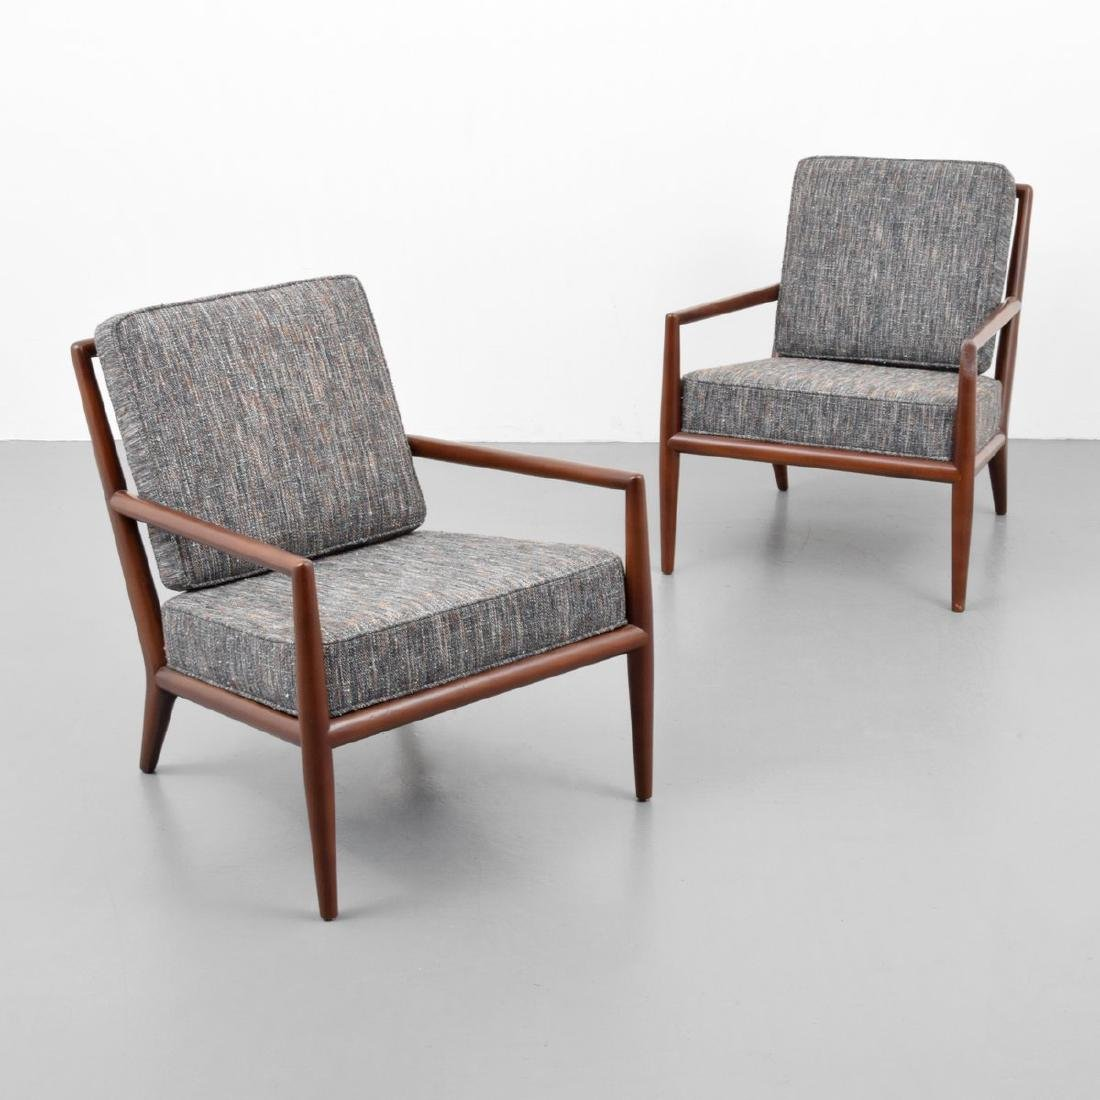 Pair of T.H. Robsjohn-Gibbings Lounge Chairs